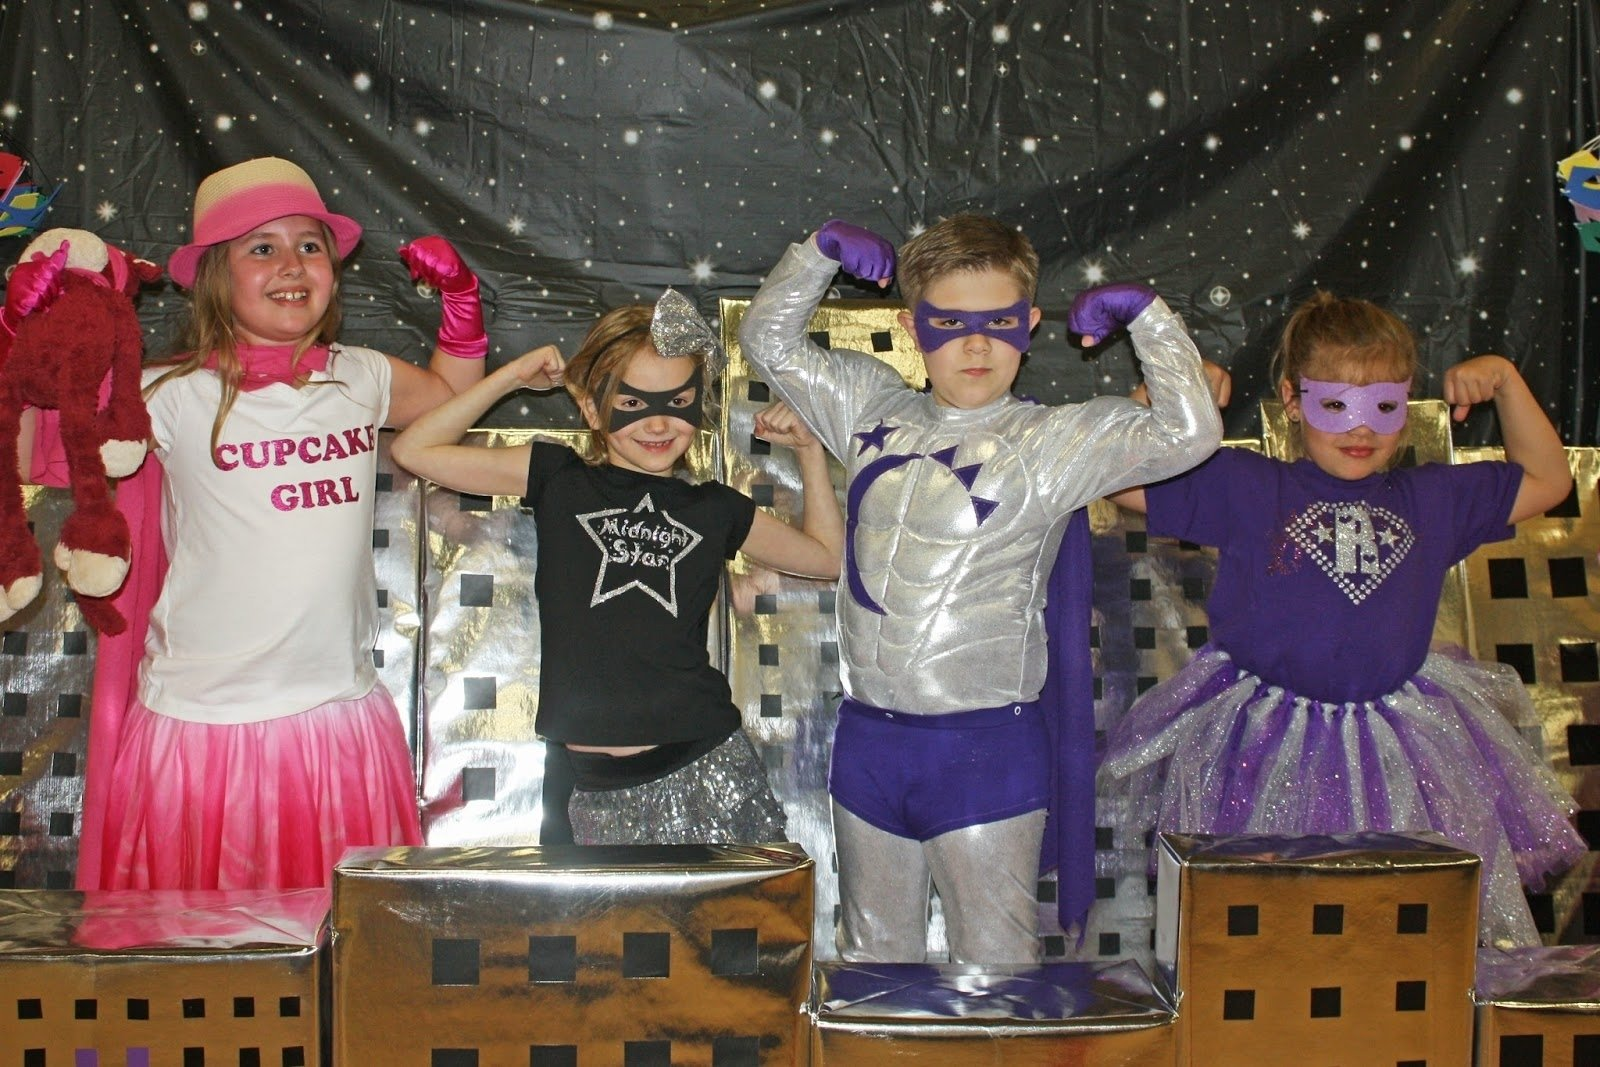 10 Most Popular Relay For Life Activity Ideas cassi selby relay for life campsite decorating and on site